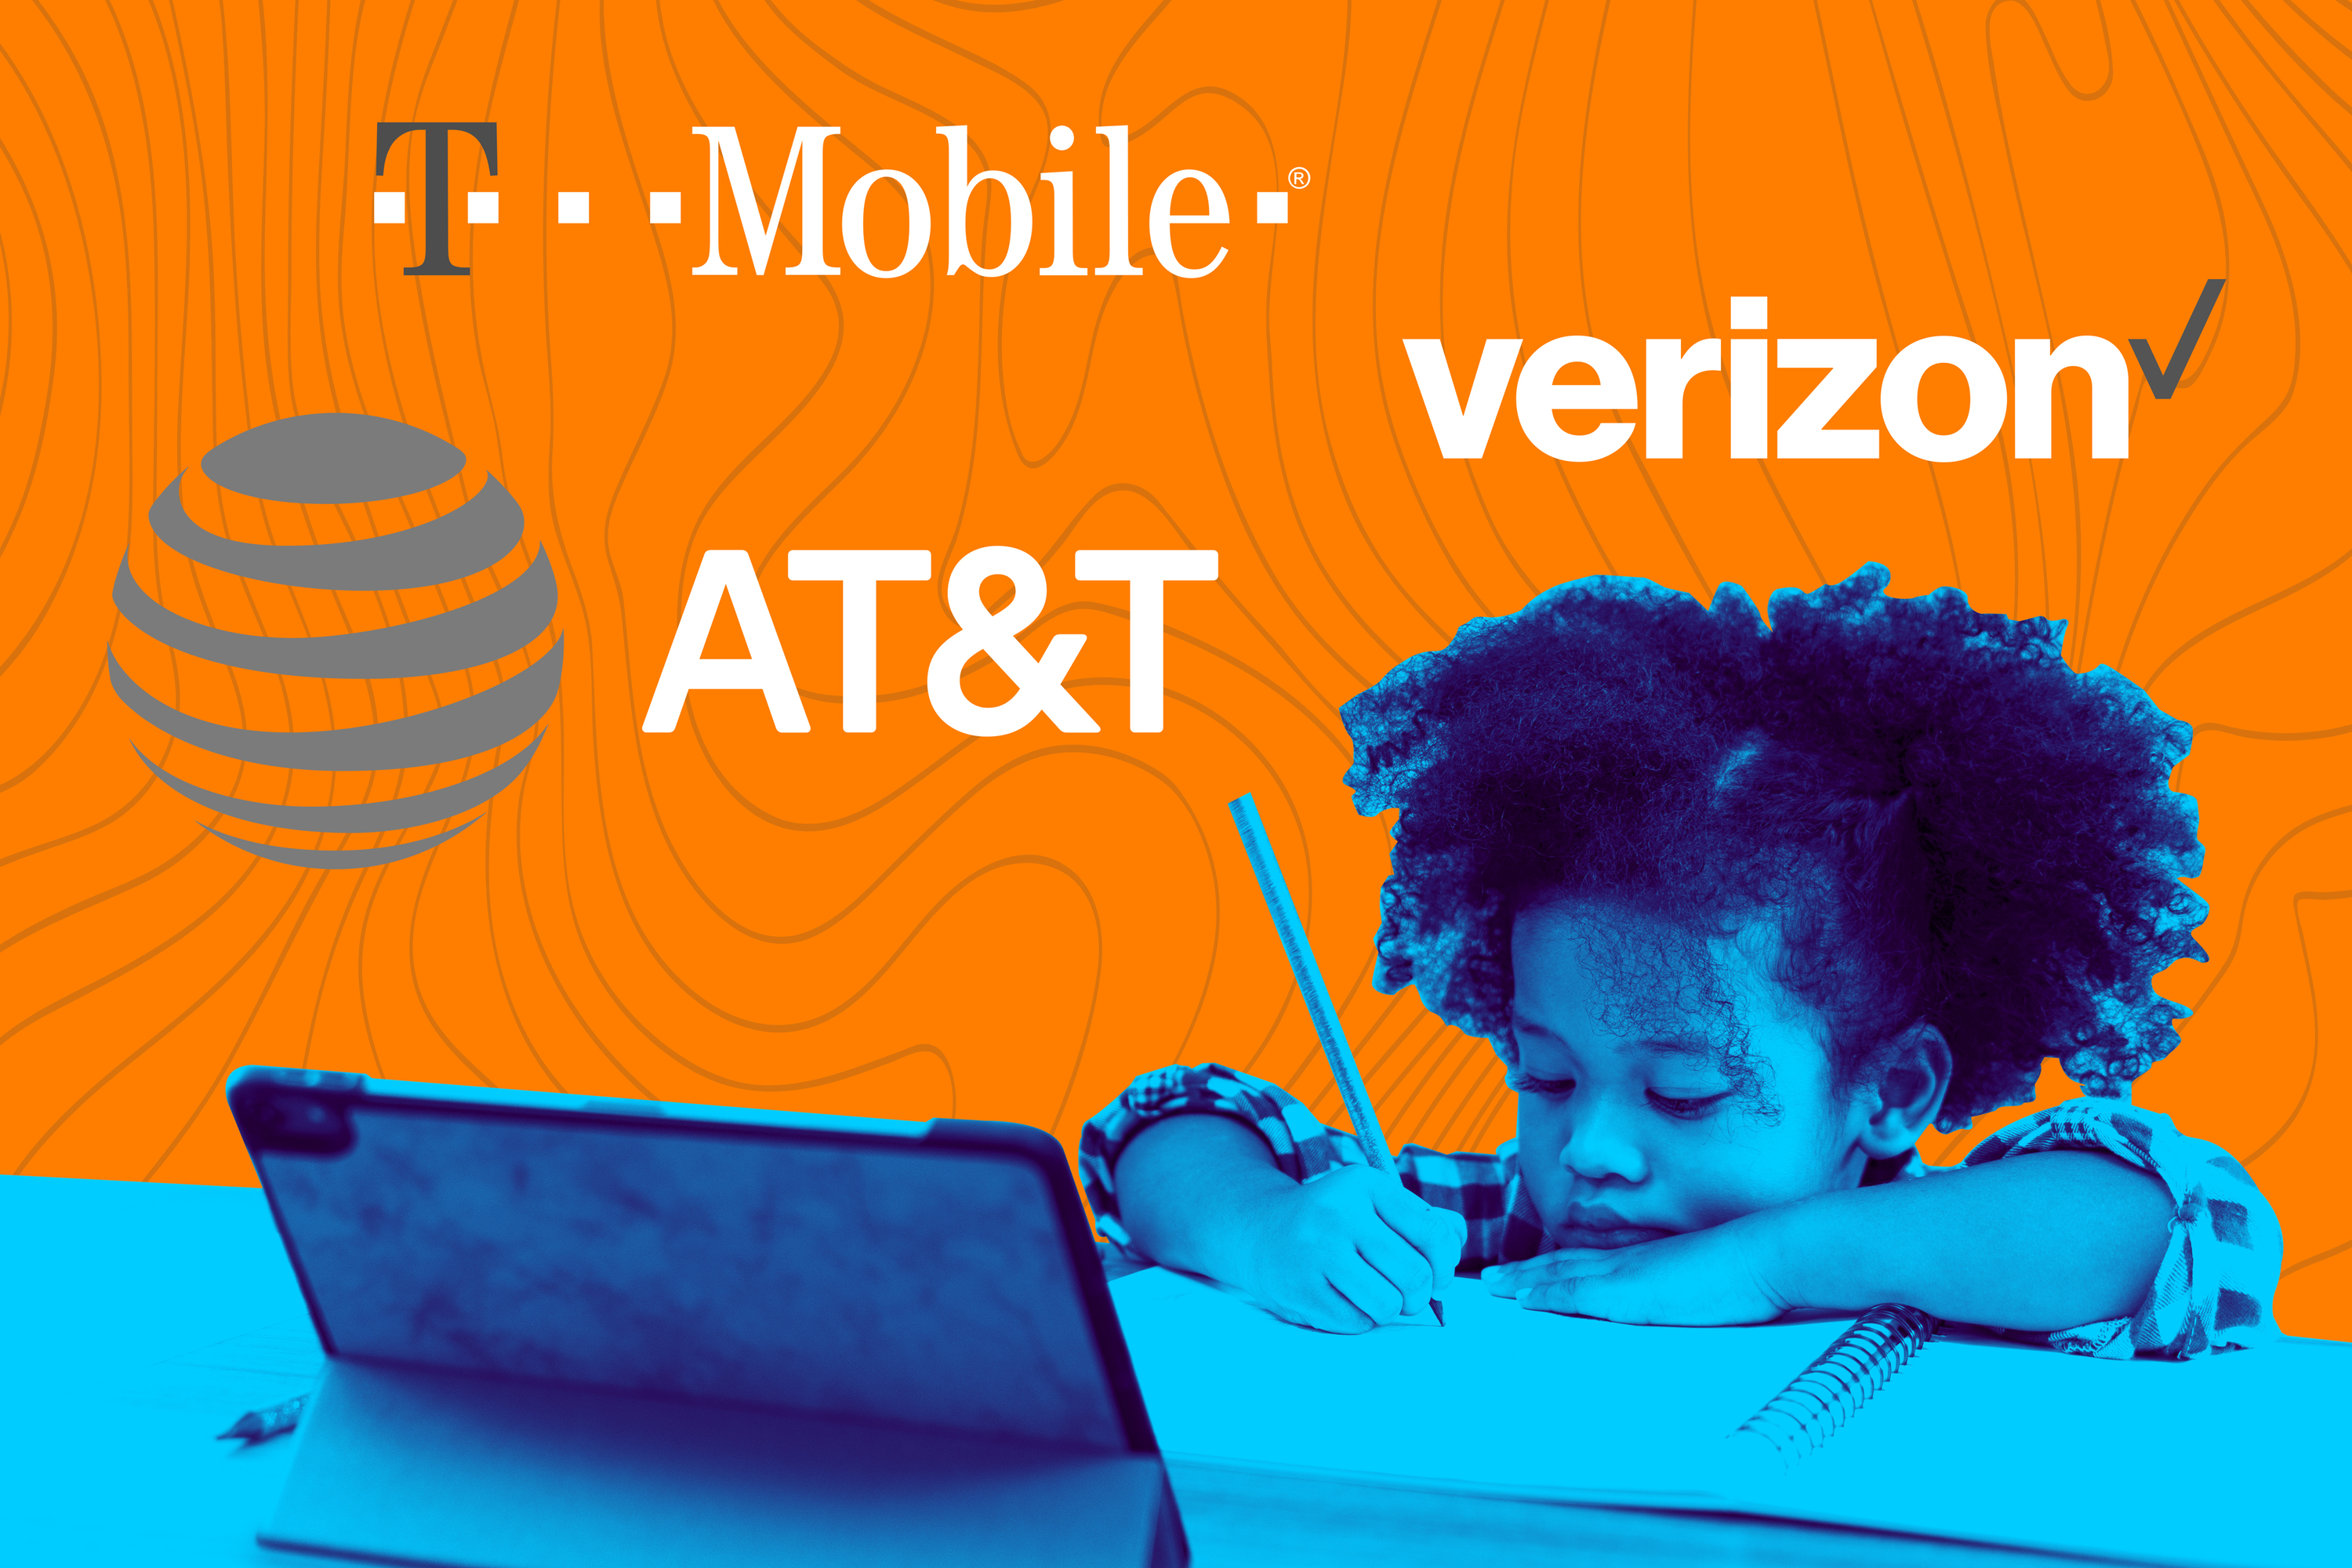 The so-called digital divide has left millions of students without the necessary tools to attend virtual classes later this fall, but wireless carriers are stepping in to close the gap while also bolstering their bottom lines.